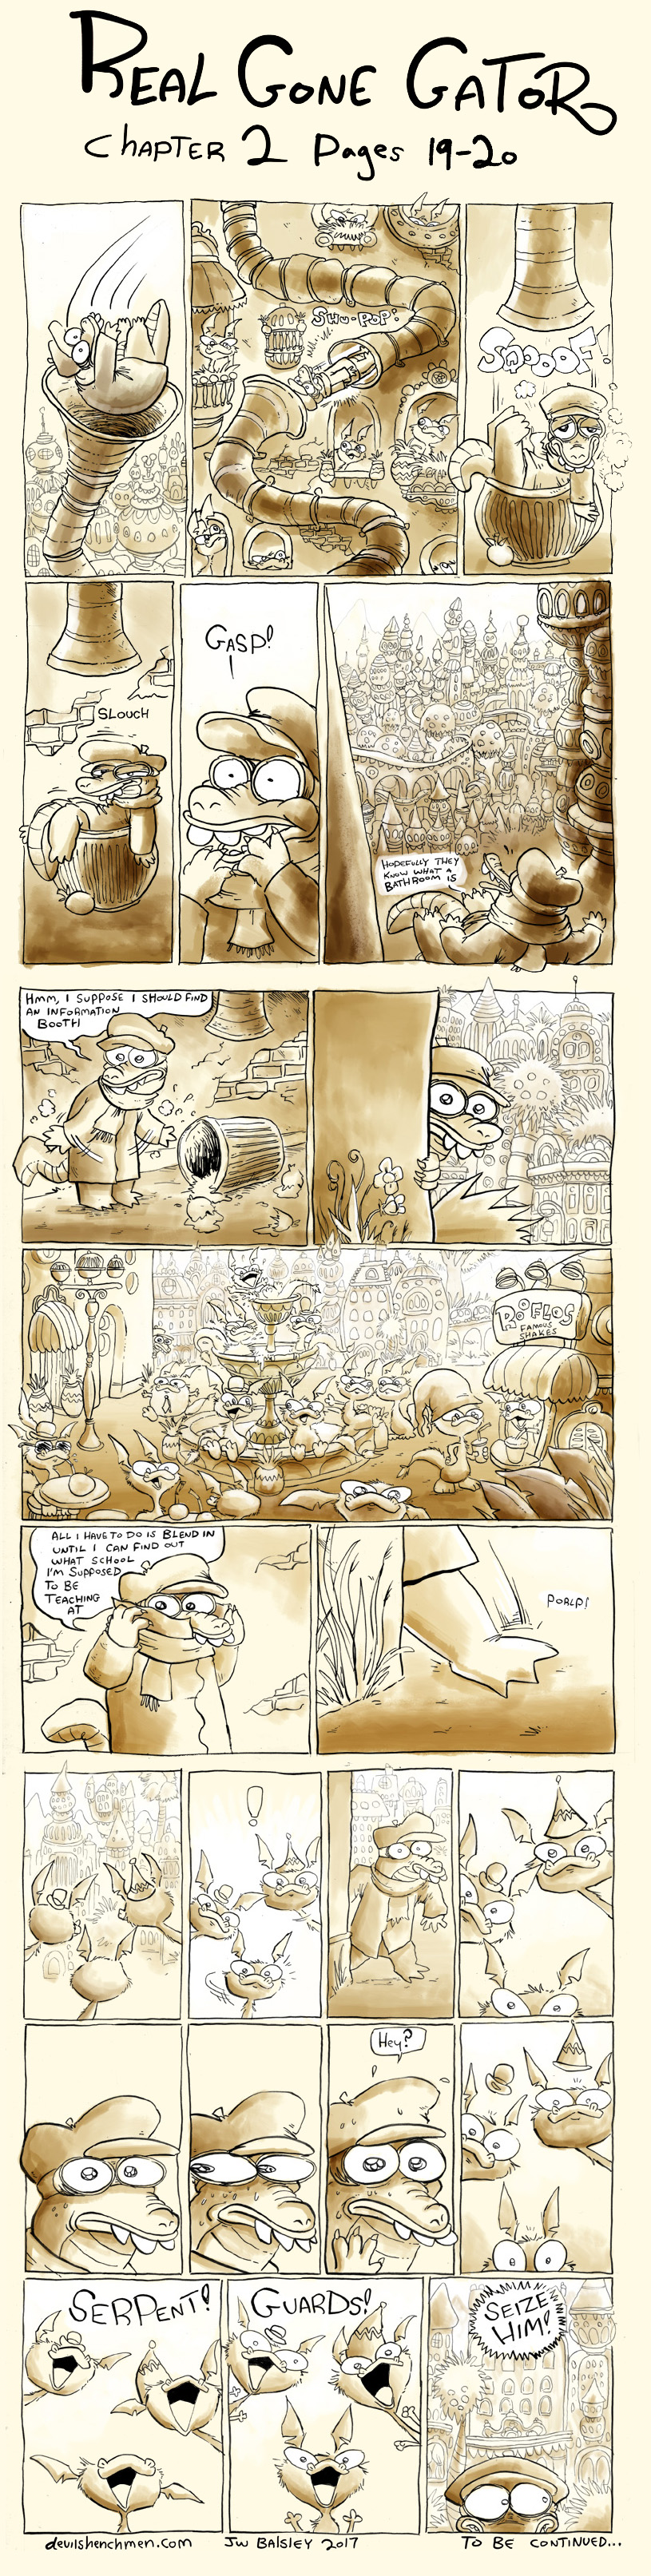 Real Gone Gator chapter 2 pages 19-21